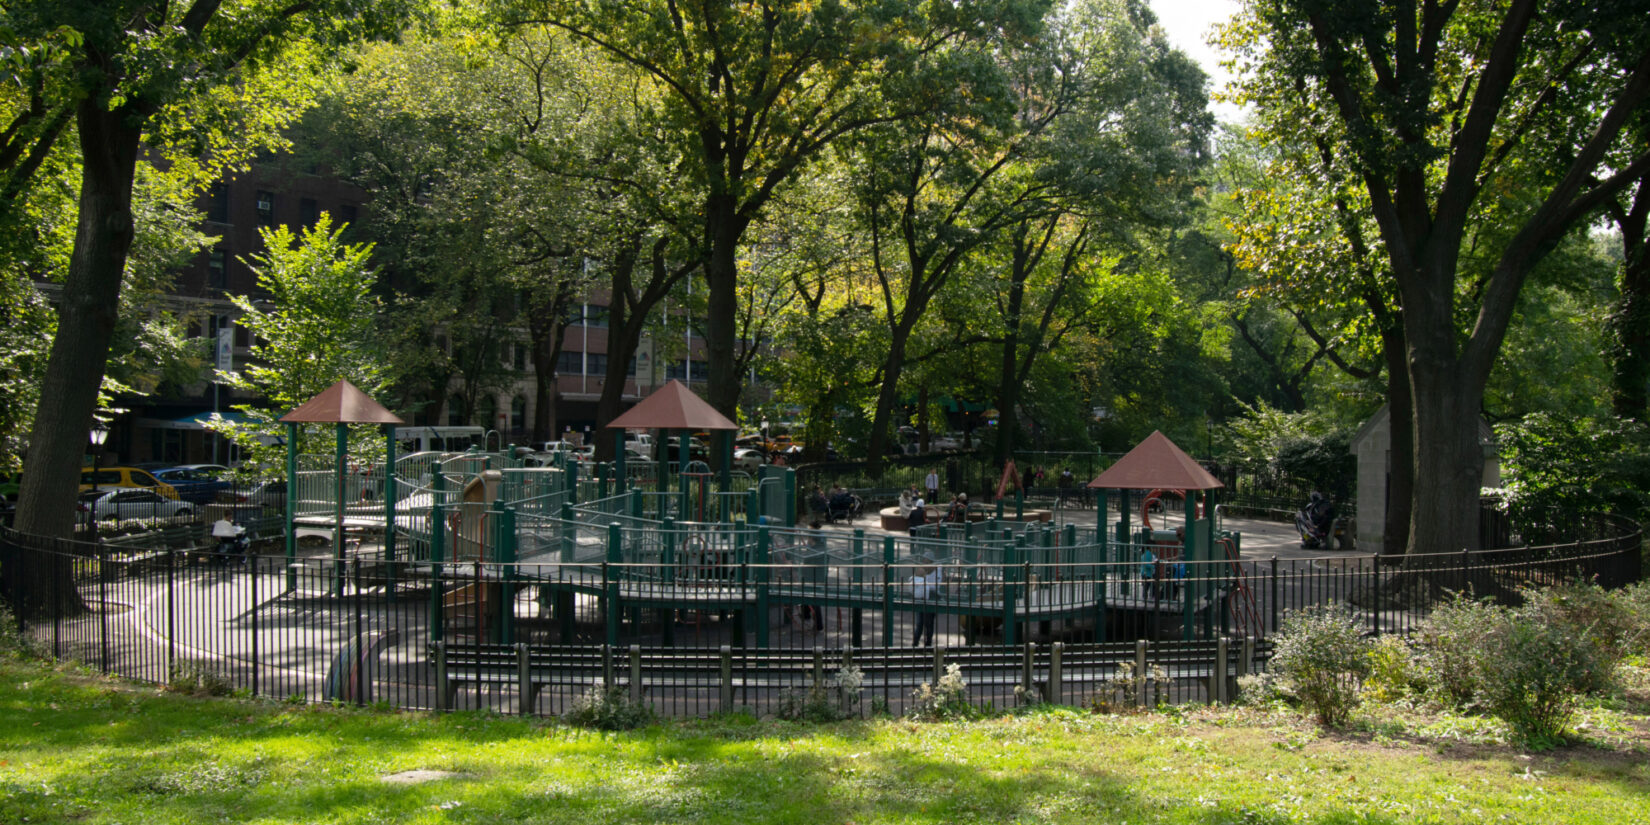 The playground shown in summer, dappled by sunlight